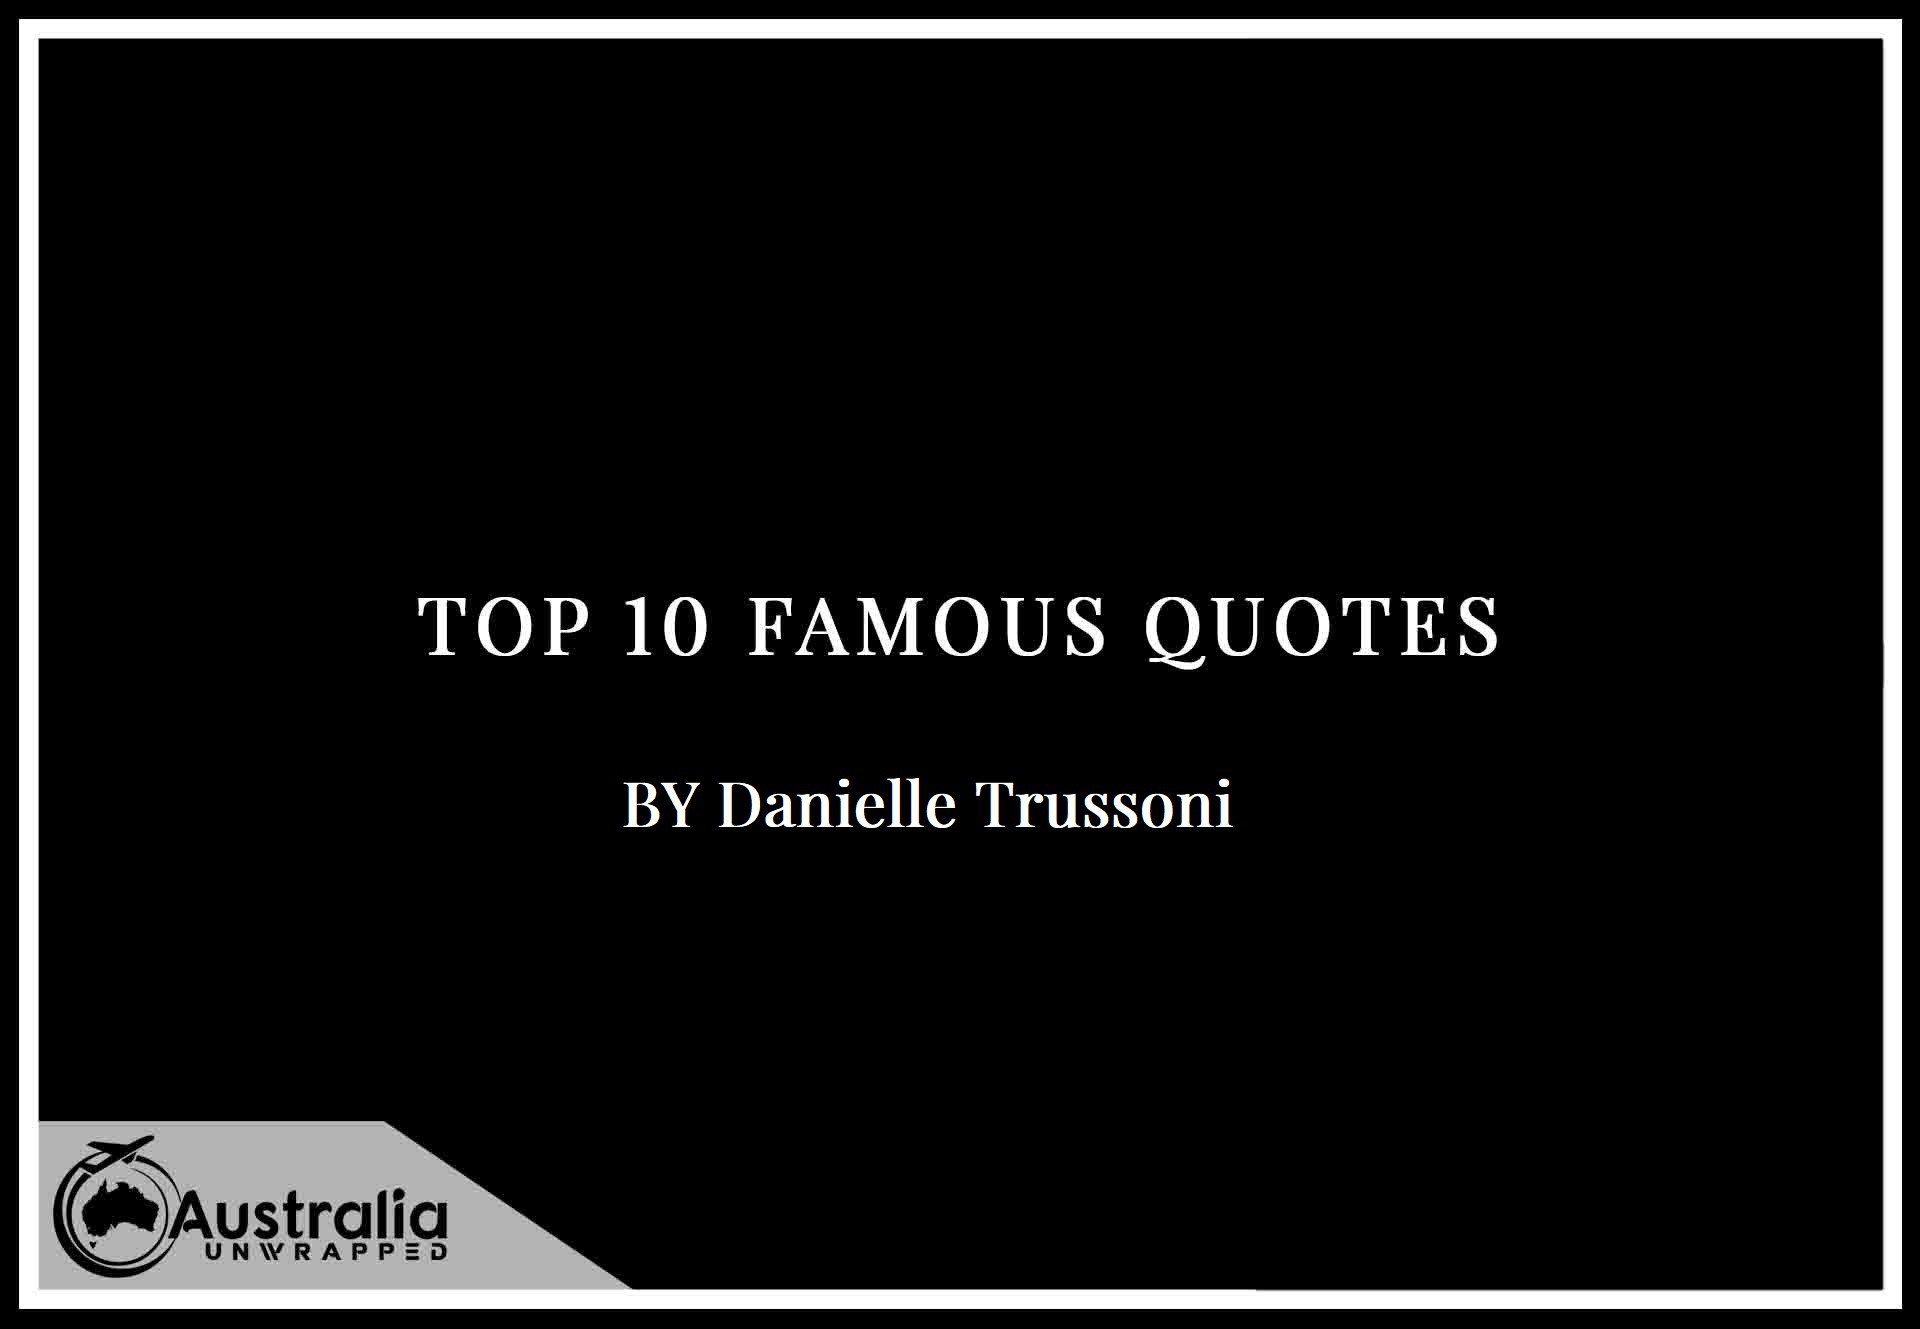 Top 10 Famous Quotes by Author Danielle Trussoni